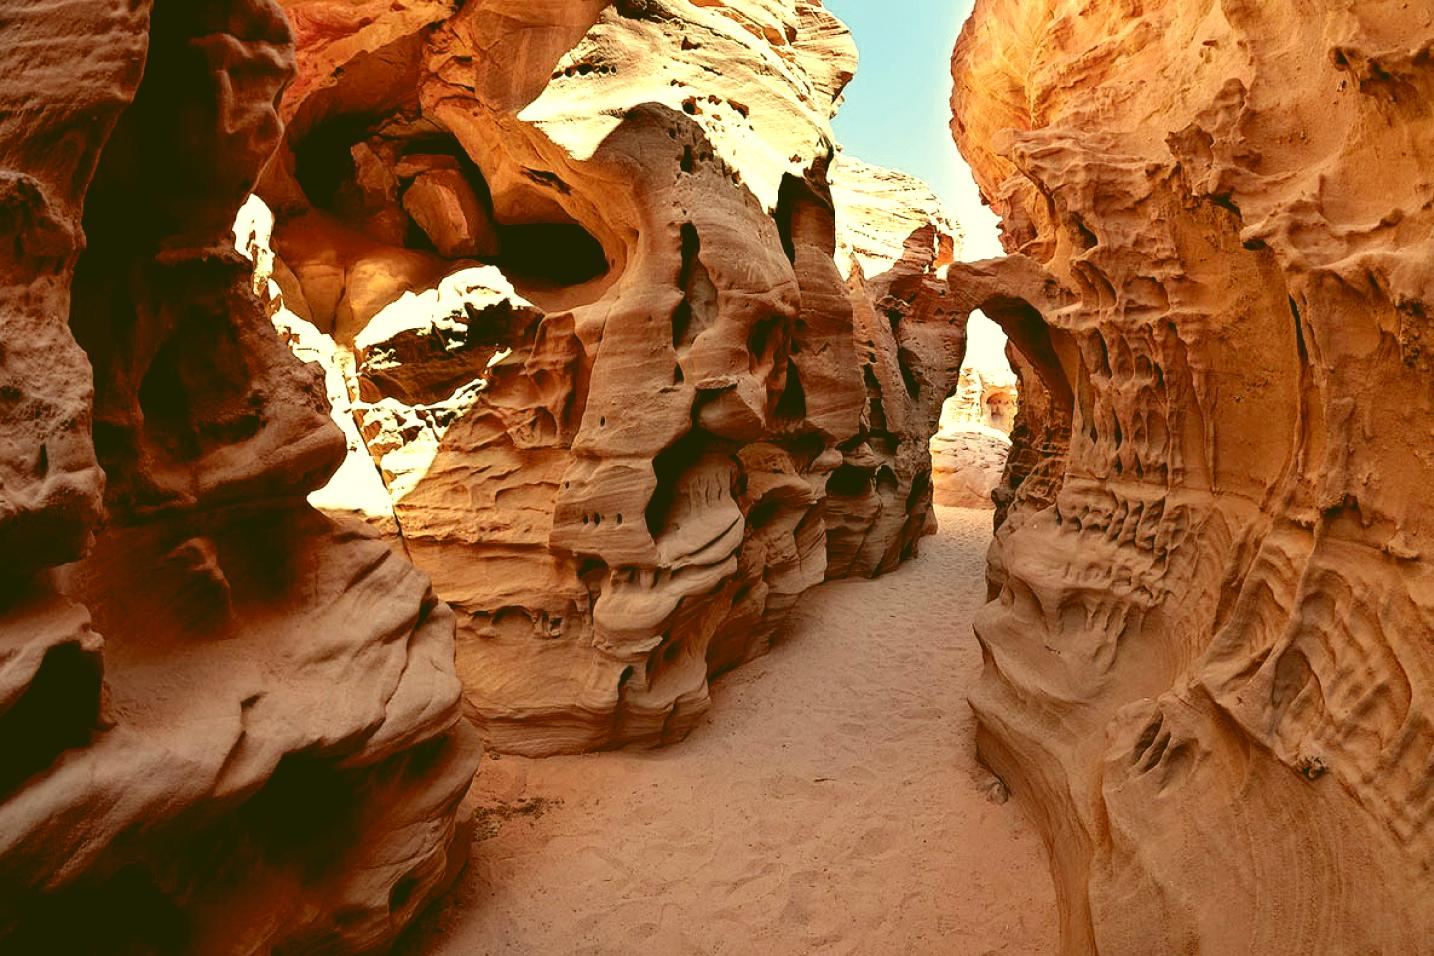 Trip to the Colored Canyon, the White Canyon and the Ein Khudra Oasis